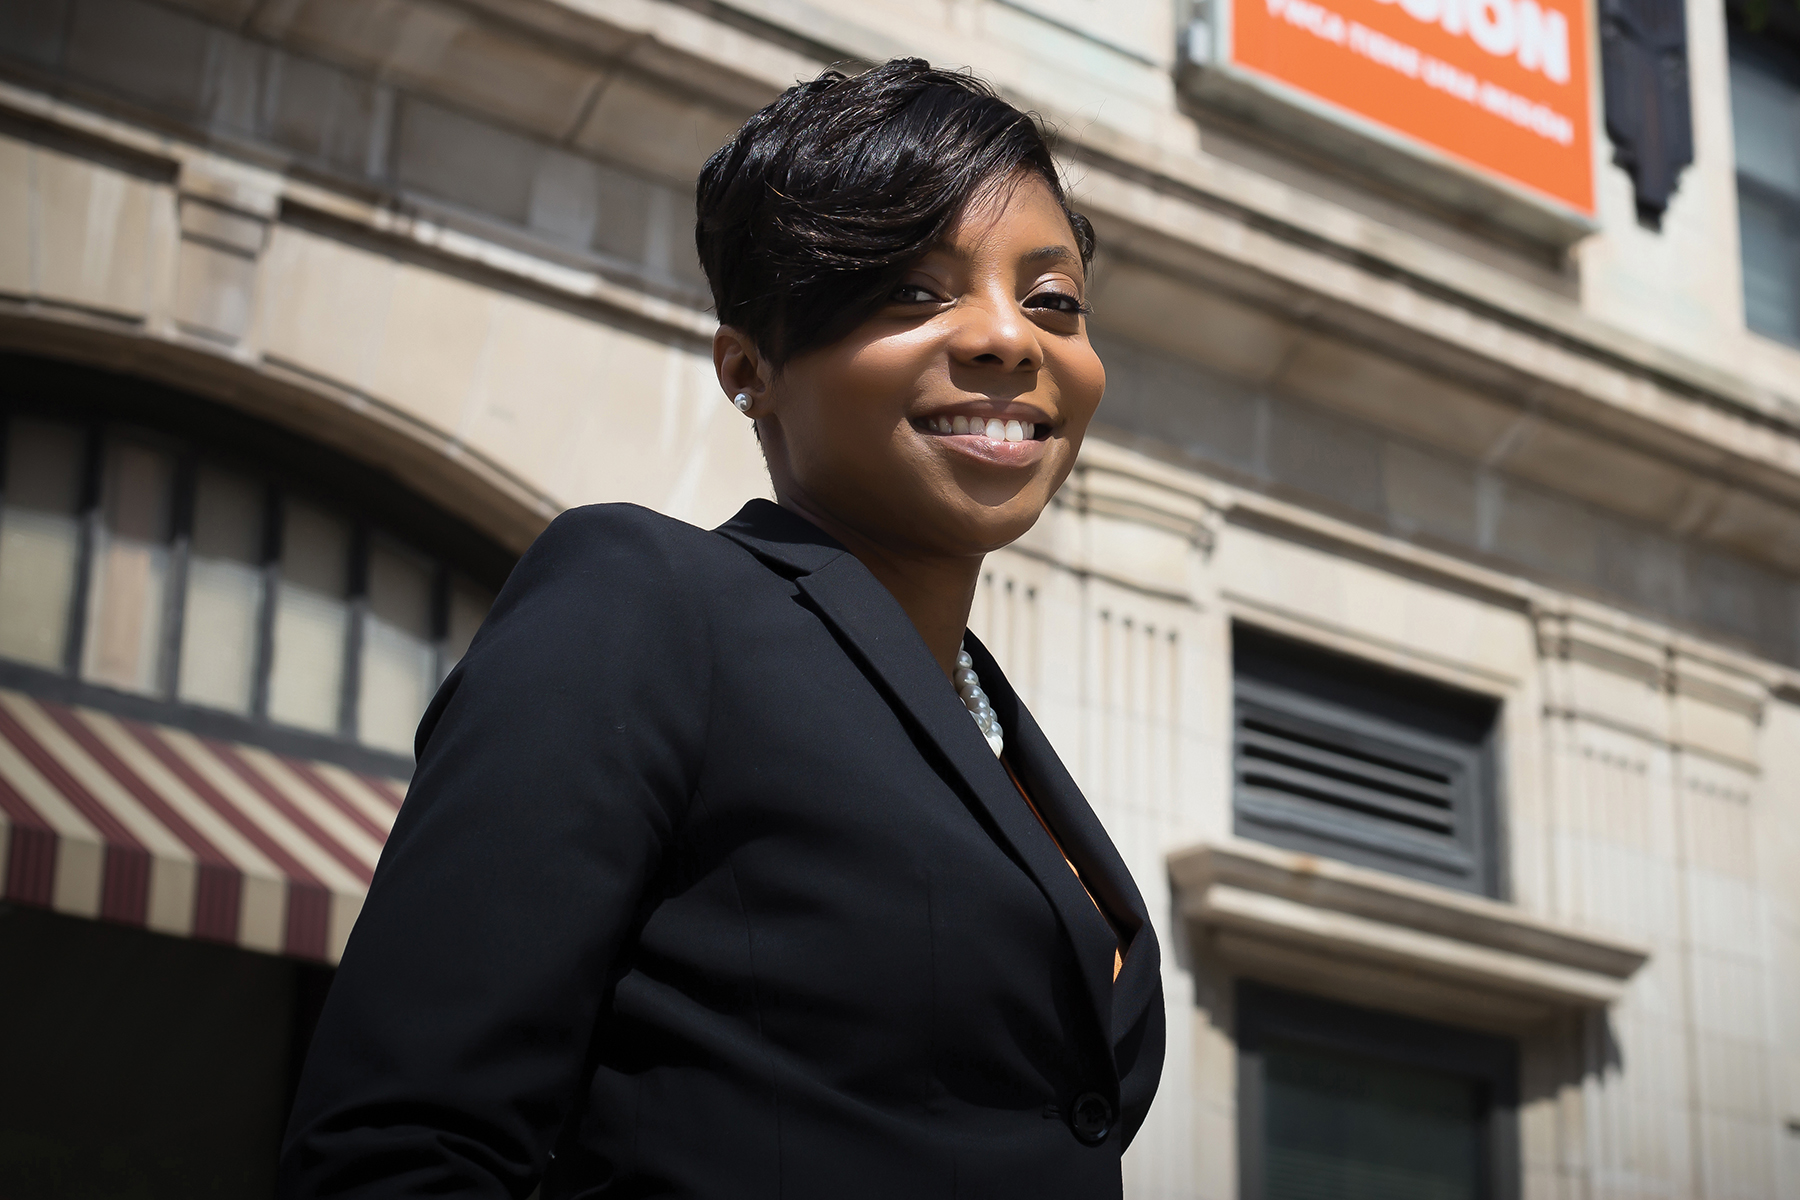 """An Empowering Path: YWCA Madison Expands Reach on Park Street After losing longtime grant funding that put two of its housing programs serving vulnerable populations at risk during the pandemic, YWCA Madison was grateful to receive what CEO Vanessa McDowell calls """"the MacKenzie Scott miracle"""" at the end of 2020. The philanthropist's unrestricted donation—meant to address """"long-term systemic inequities that have been deepened by the crisis""""—is not the only contribution in recent years that helped build momentum for YWCA Madison's dedication to eliminating racism, empowering women and promoting peace, justice, freedom and dignity for all."""